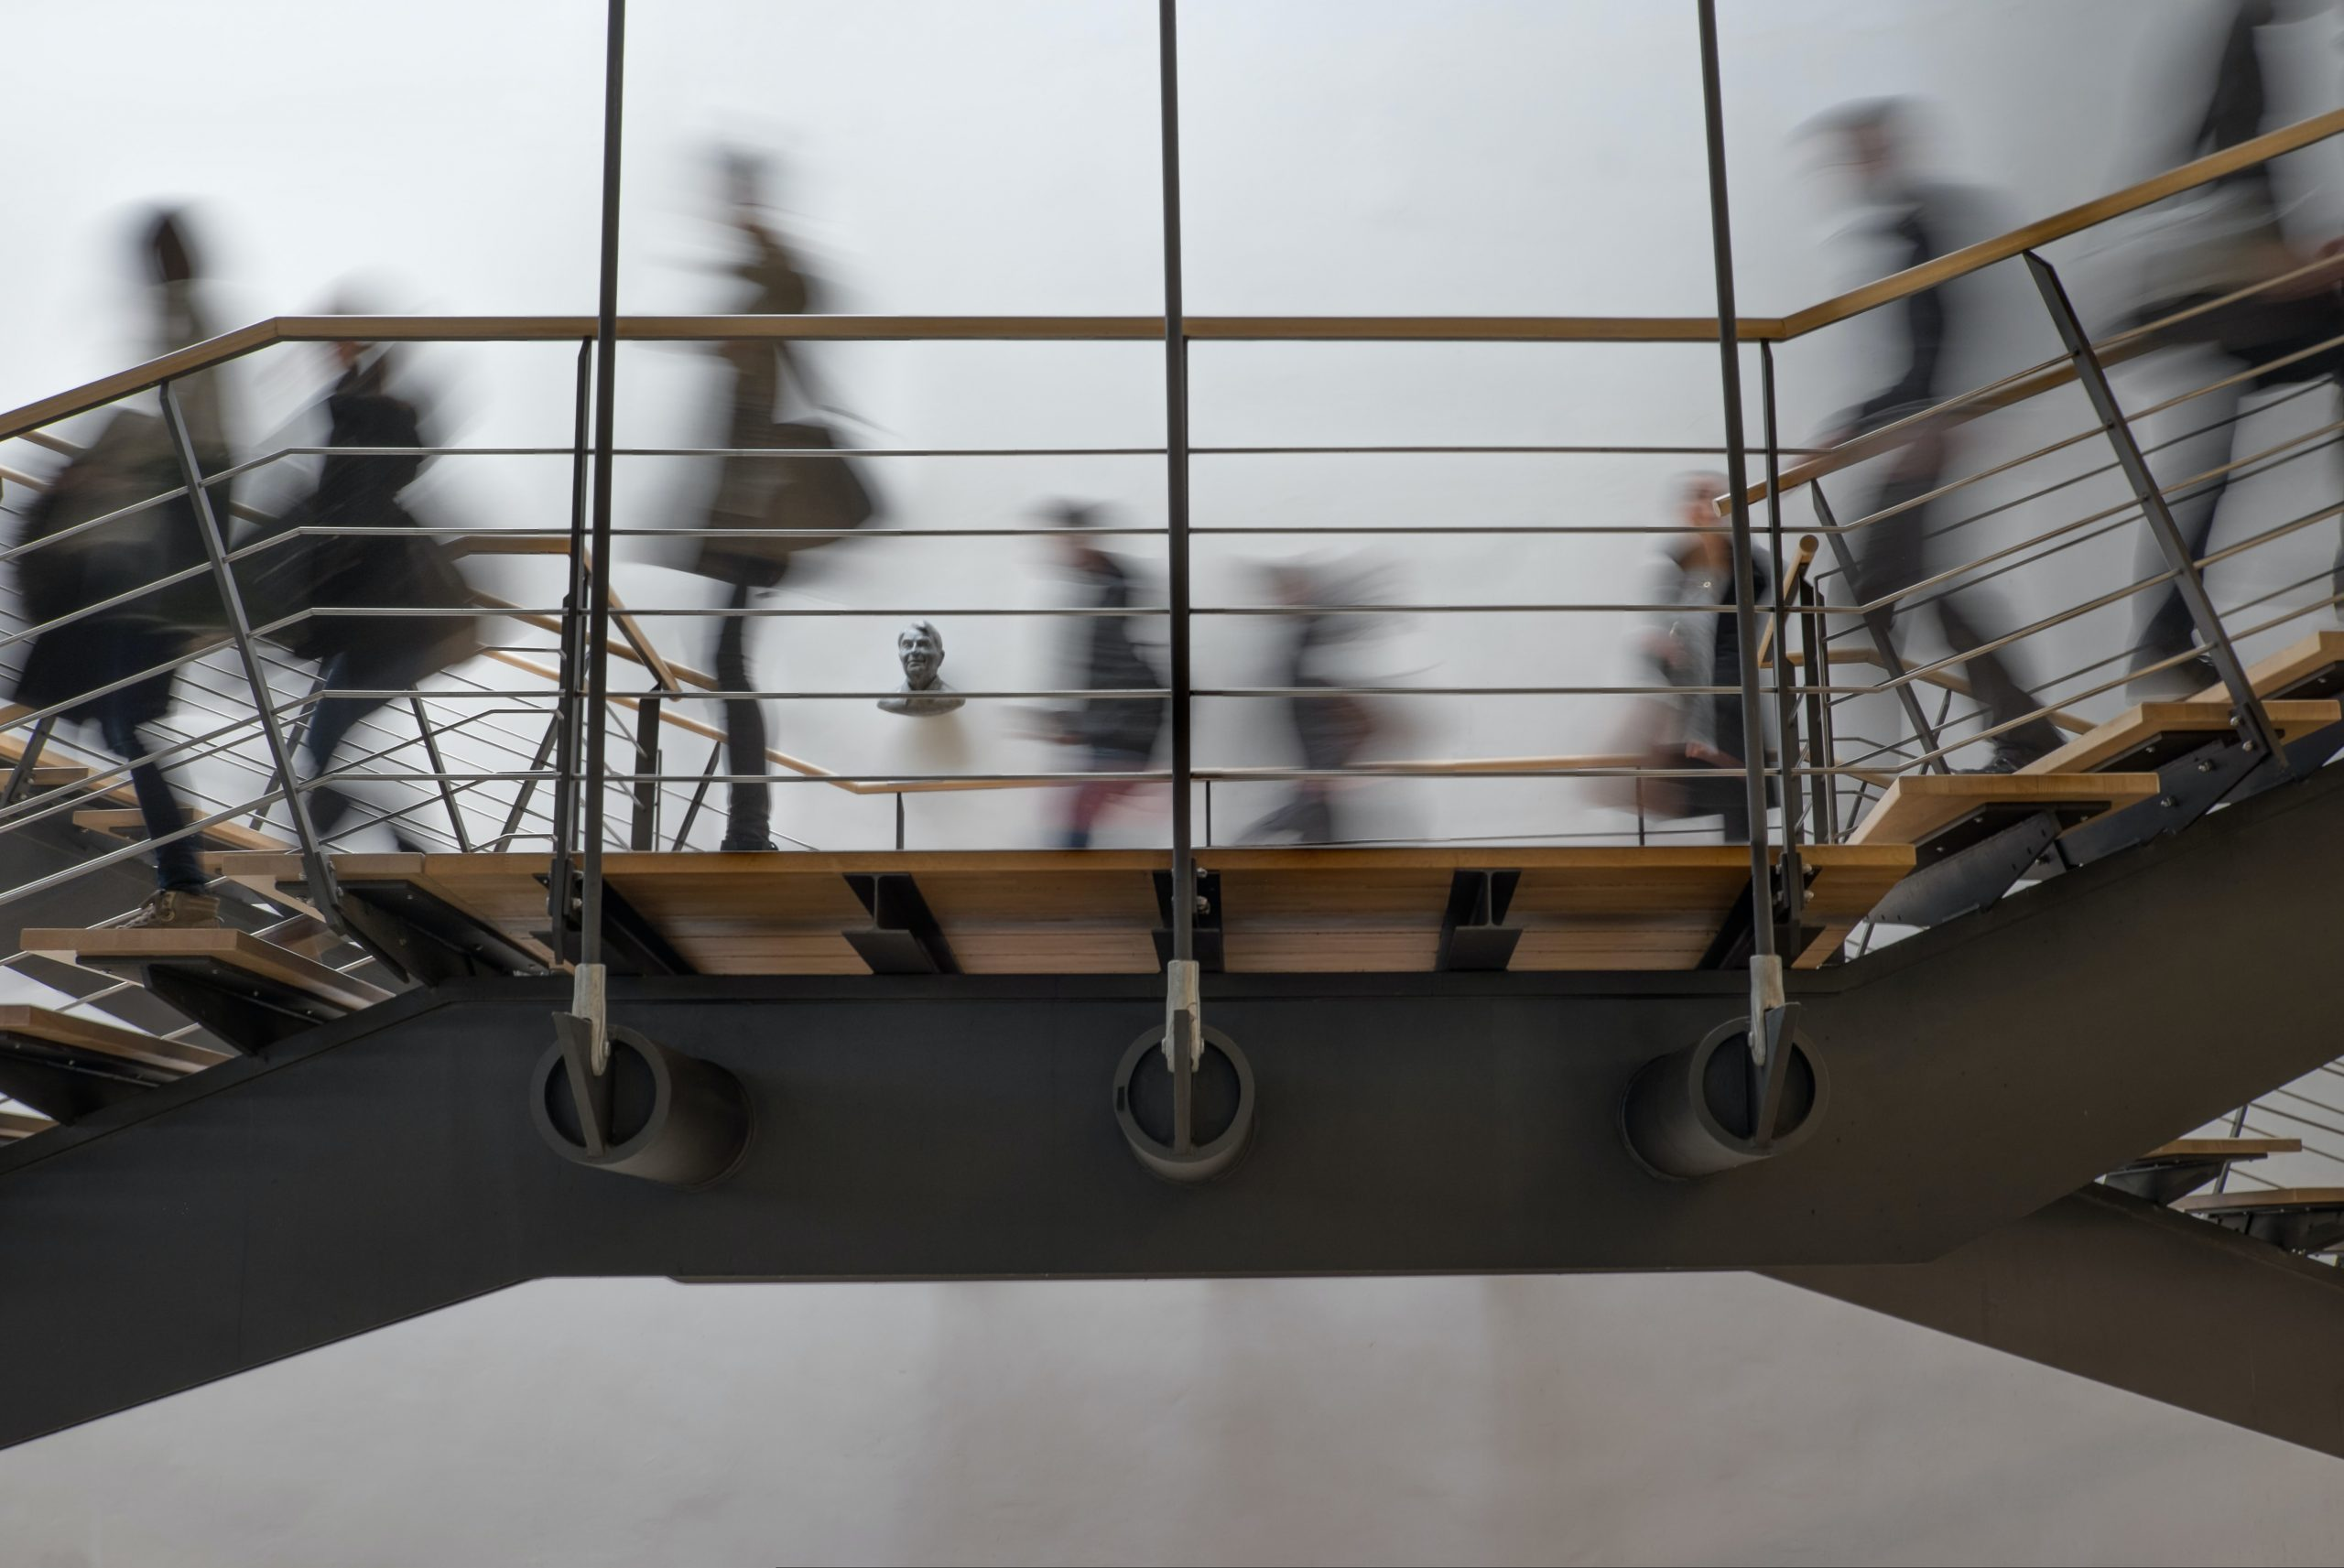 in article about seniors in college, a blurry photo of students walking on a walkway